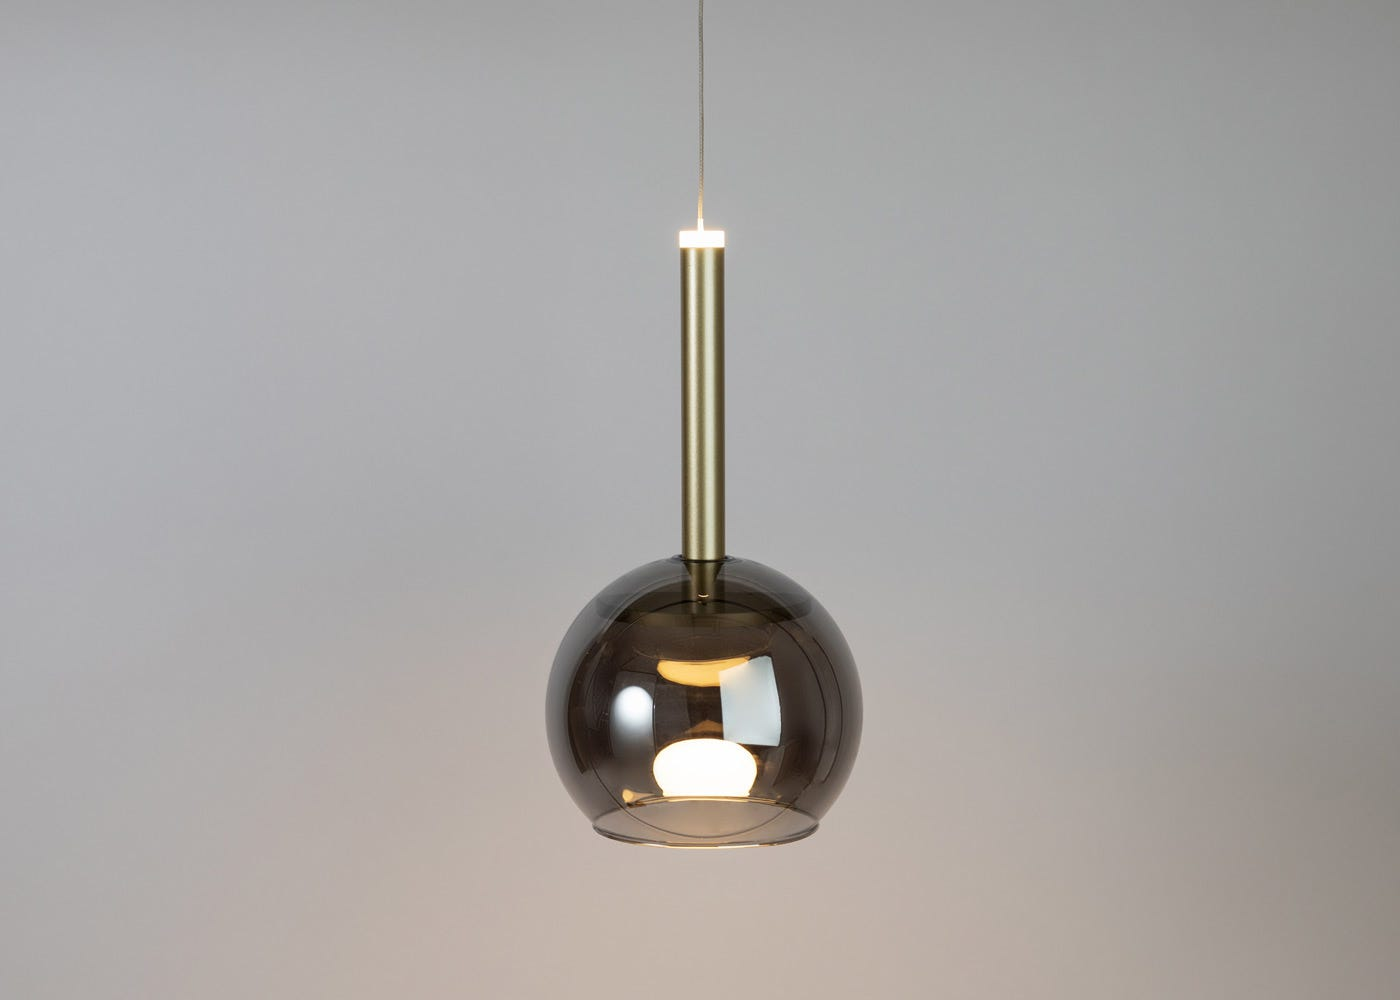 Smocked glass shade with disc long LED pendant in gold on (please note the pendant is sold separately).